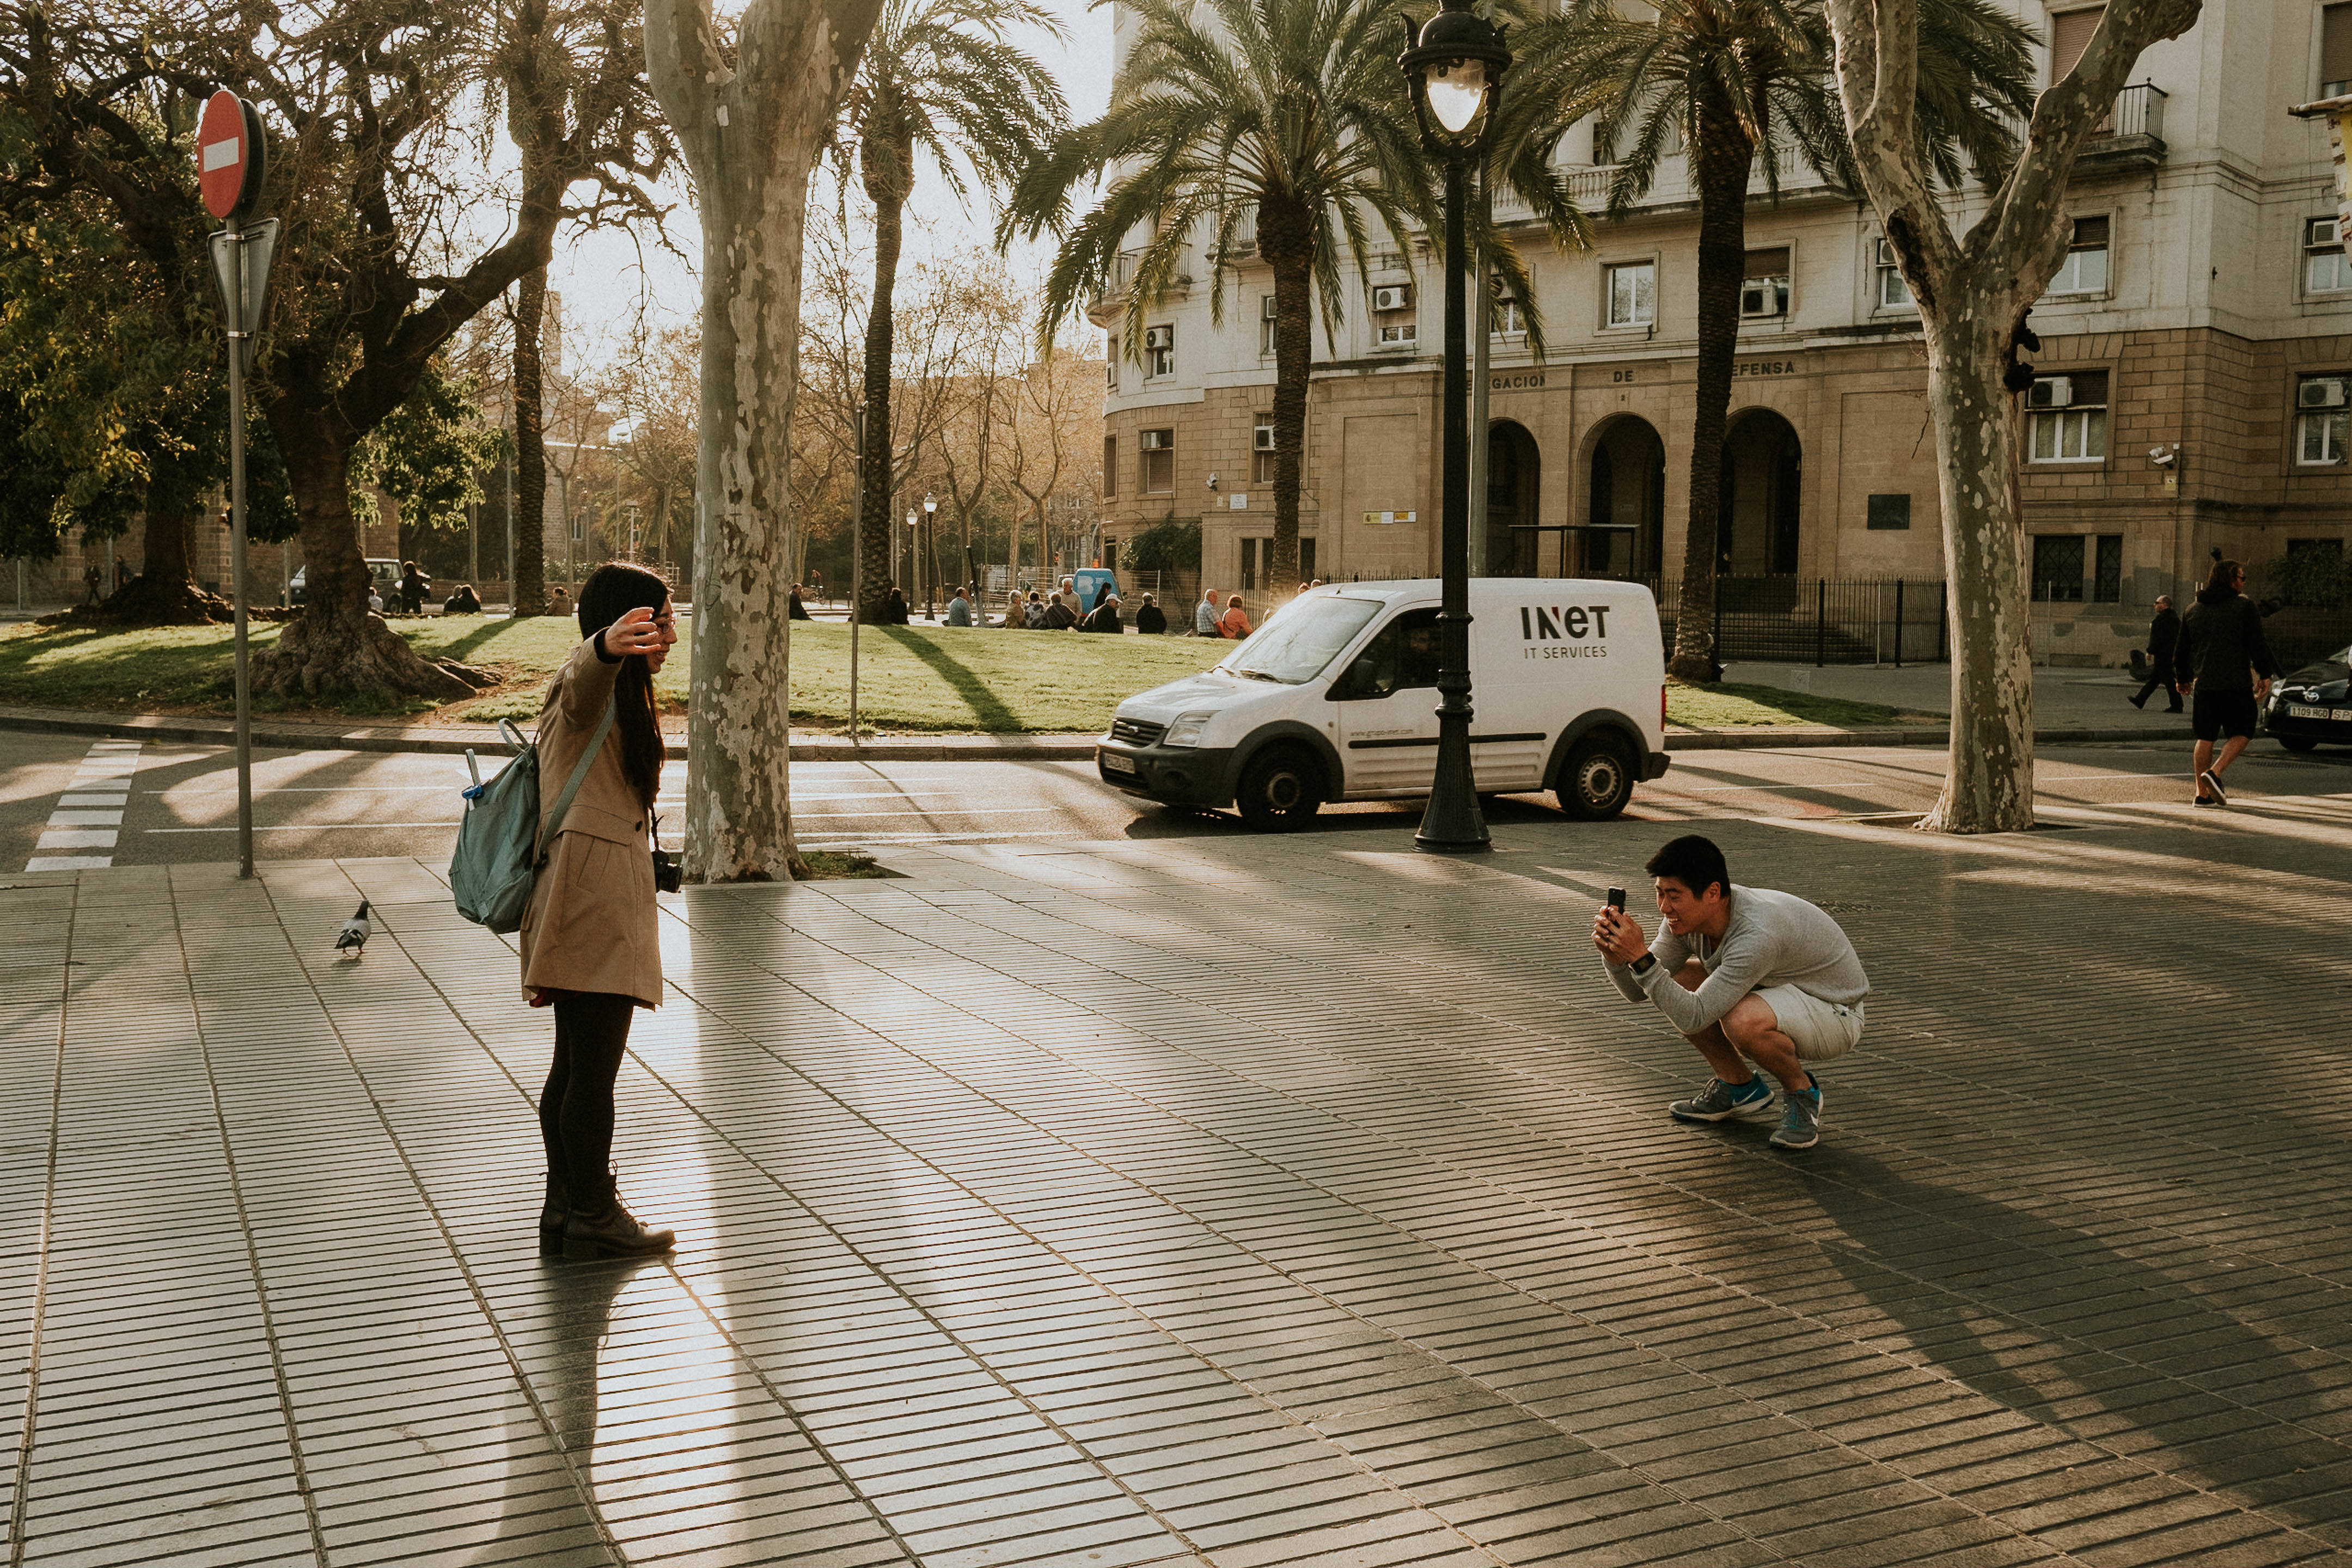 A man takes a photo of a girl on Las Ramblas, Barcelona